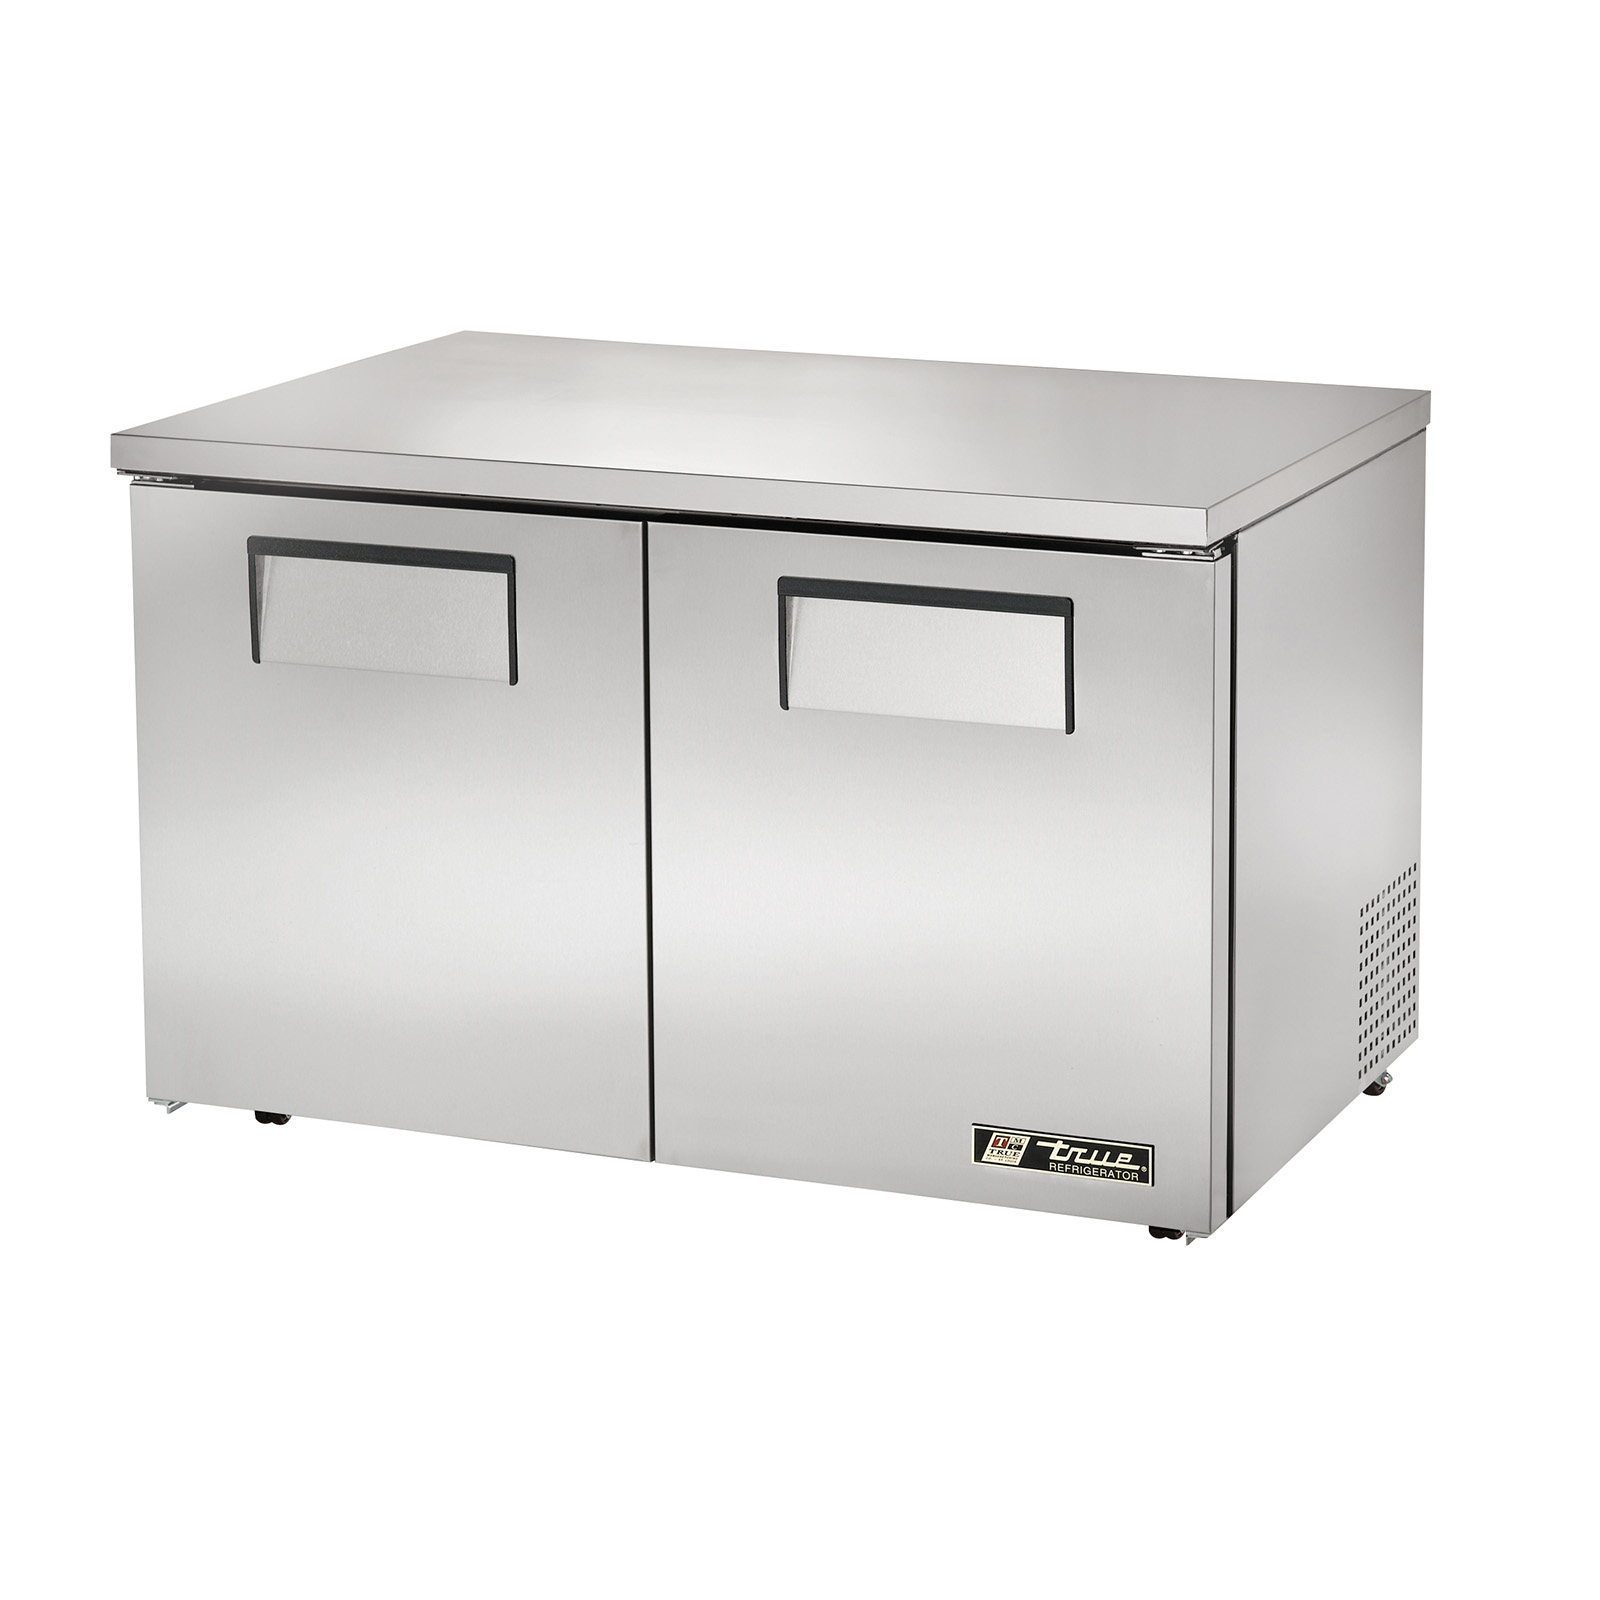 TUC-48-LP-HC True - Low Profile Undercounter Refrigerator 33-38? F